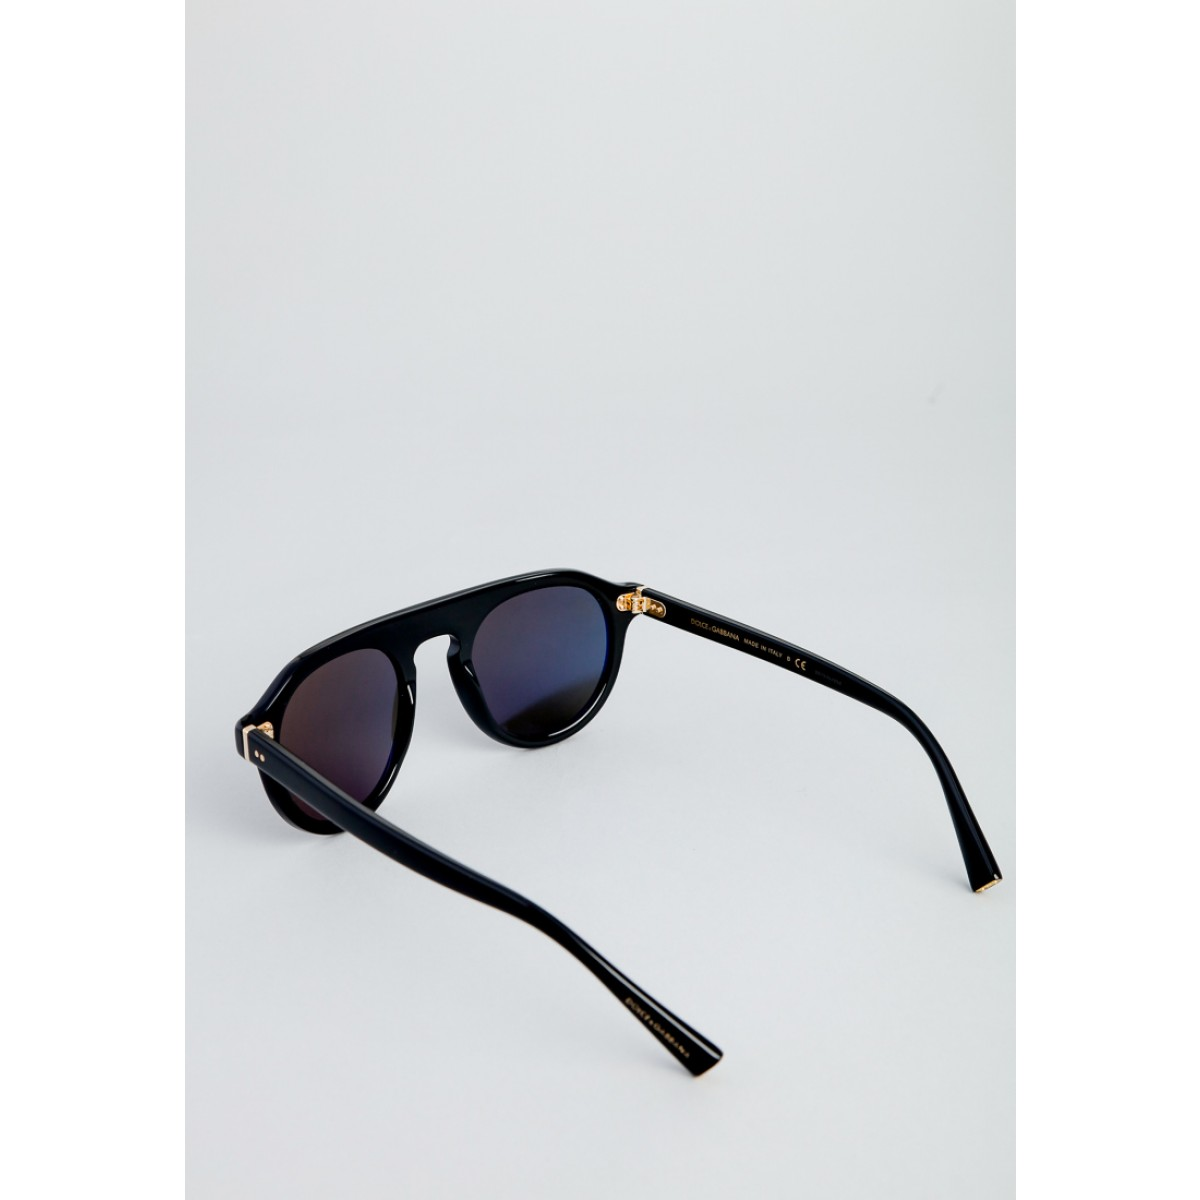 b838ae2ae820 Dolce   Gabbana Black Aviator Men Sunglasses DG4306-501 R5-50. Be the first  to review this product